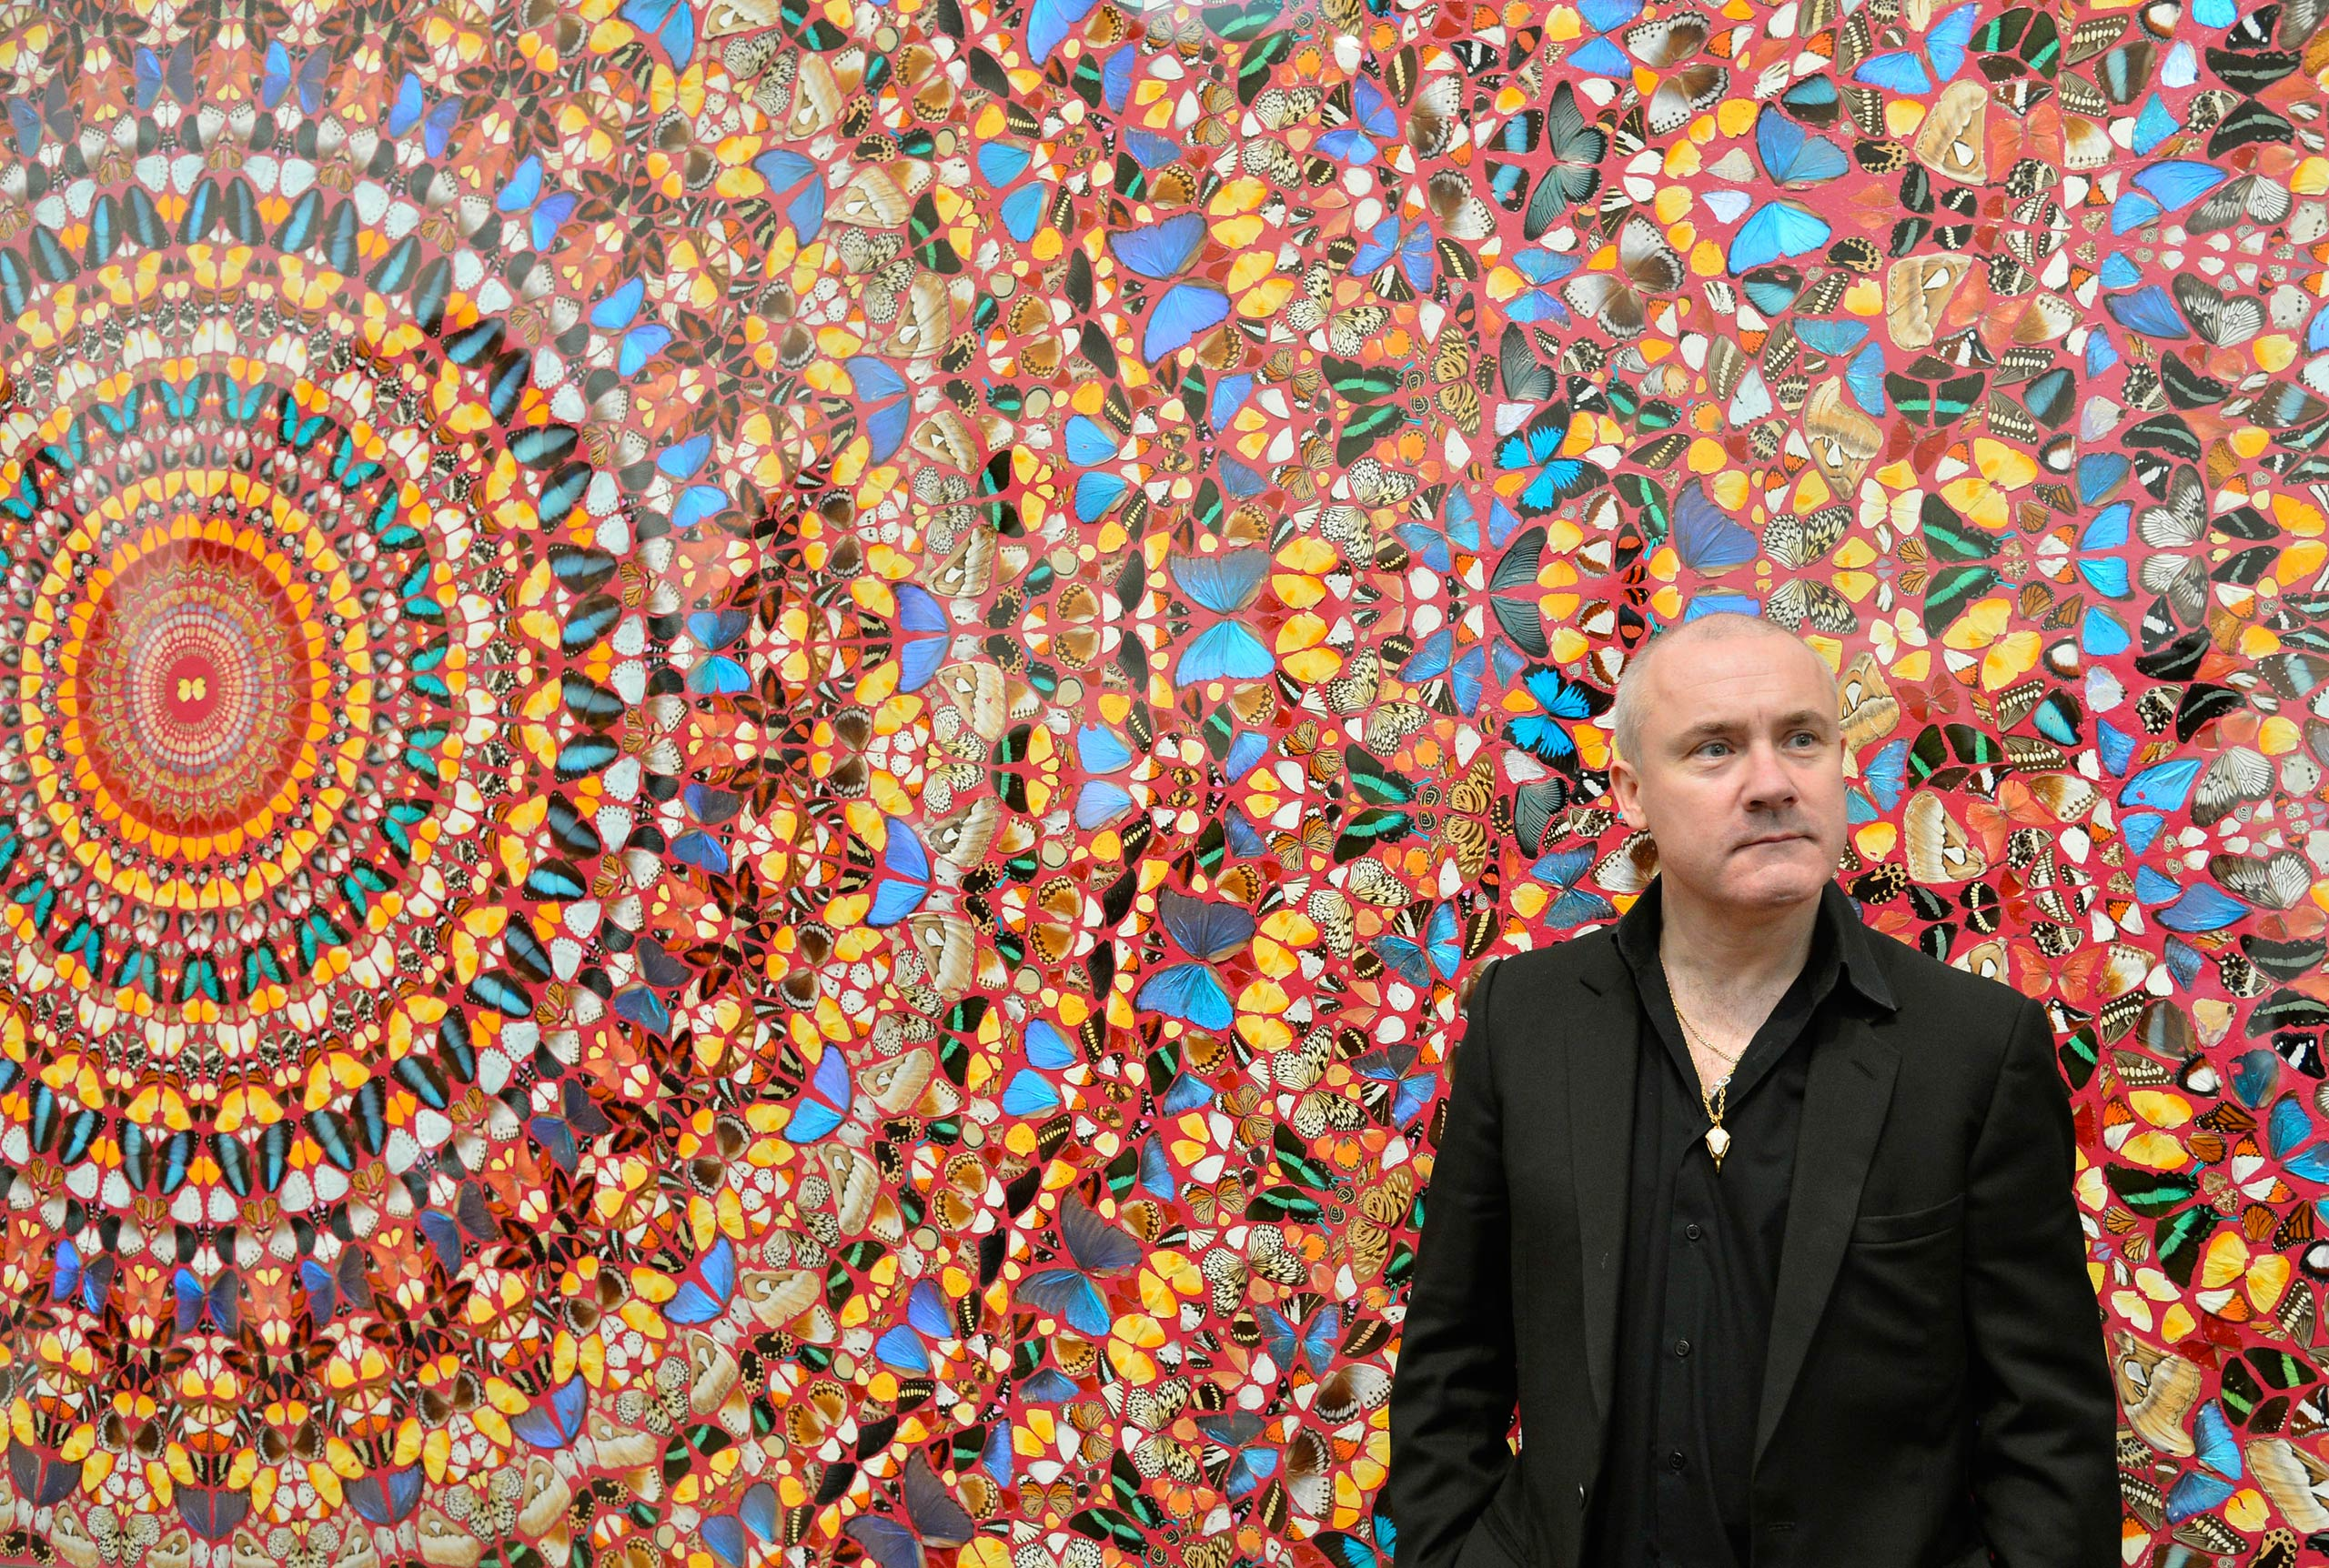 Hirst with his painting  I Am Become Death, Shatterer of Worlds  (2006), at the Tate Modern gallery in London April 2, 2012. The work, part of his Kaleidoscope series, consists of butterfly wings in household paint.